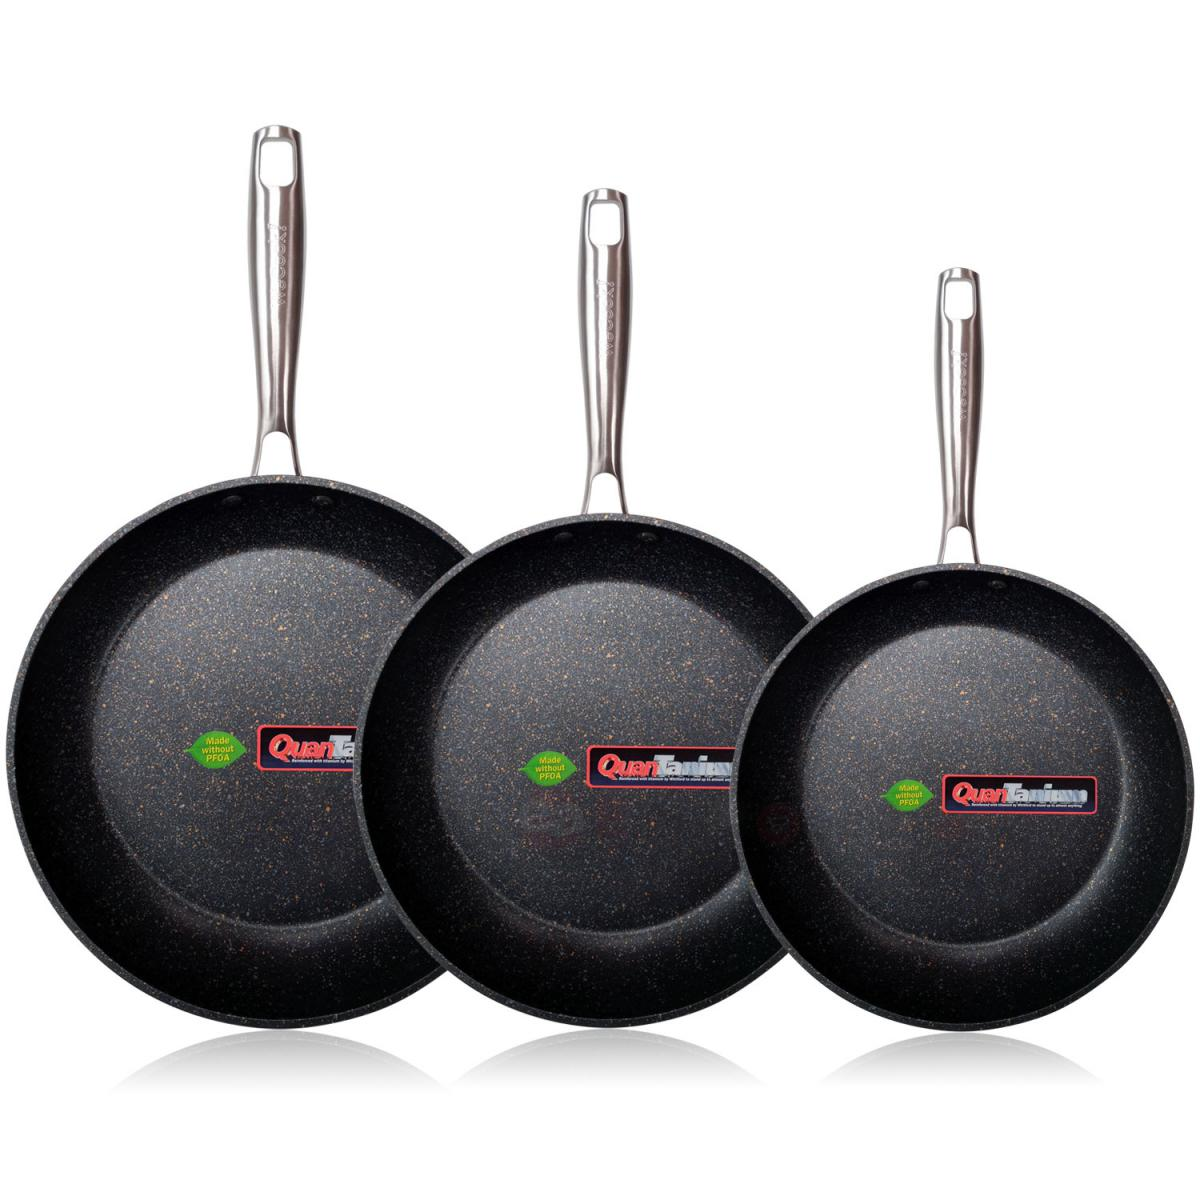 Icook Lot de 3 casseroles 18-20-24cm Aluminium forgé induction Titane antiadhésif Wecook Ecochef